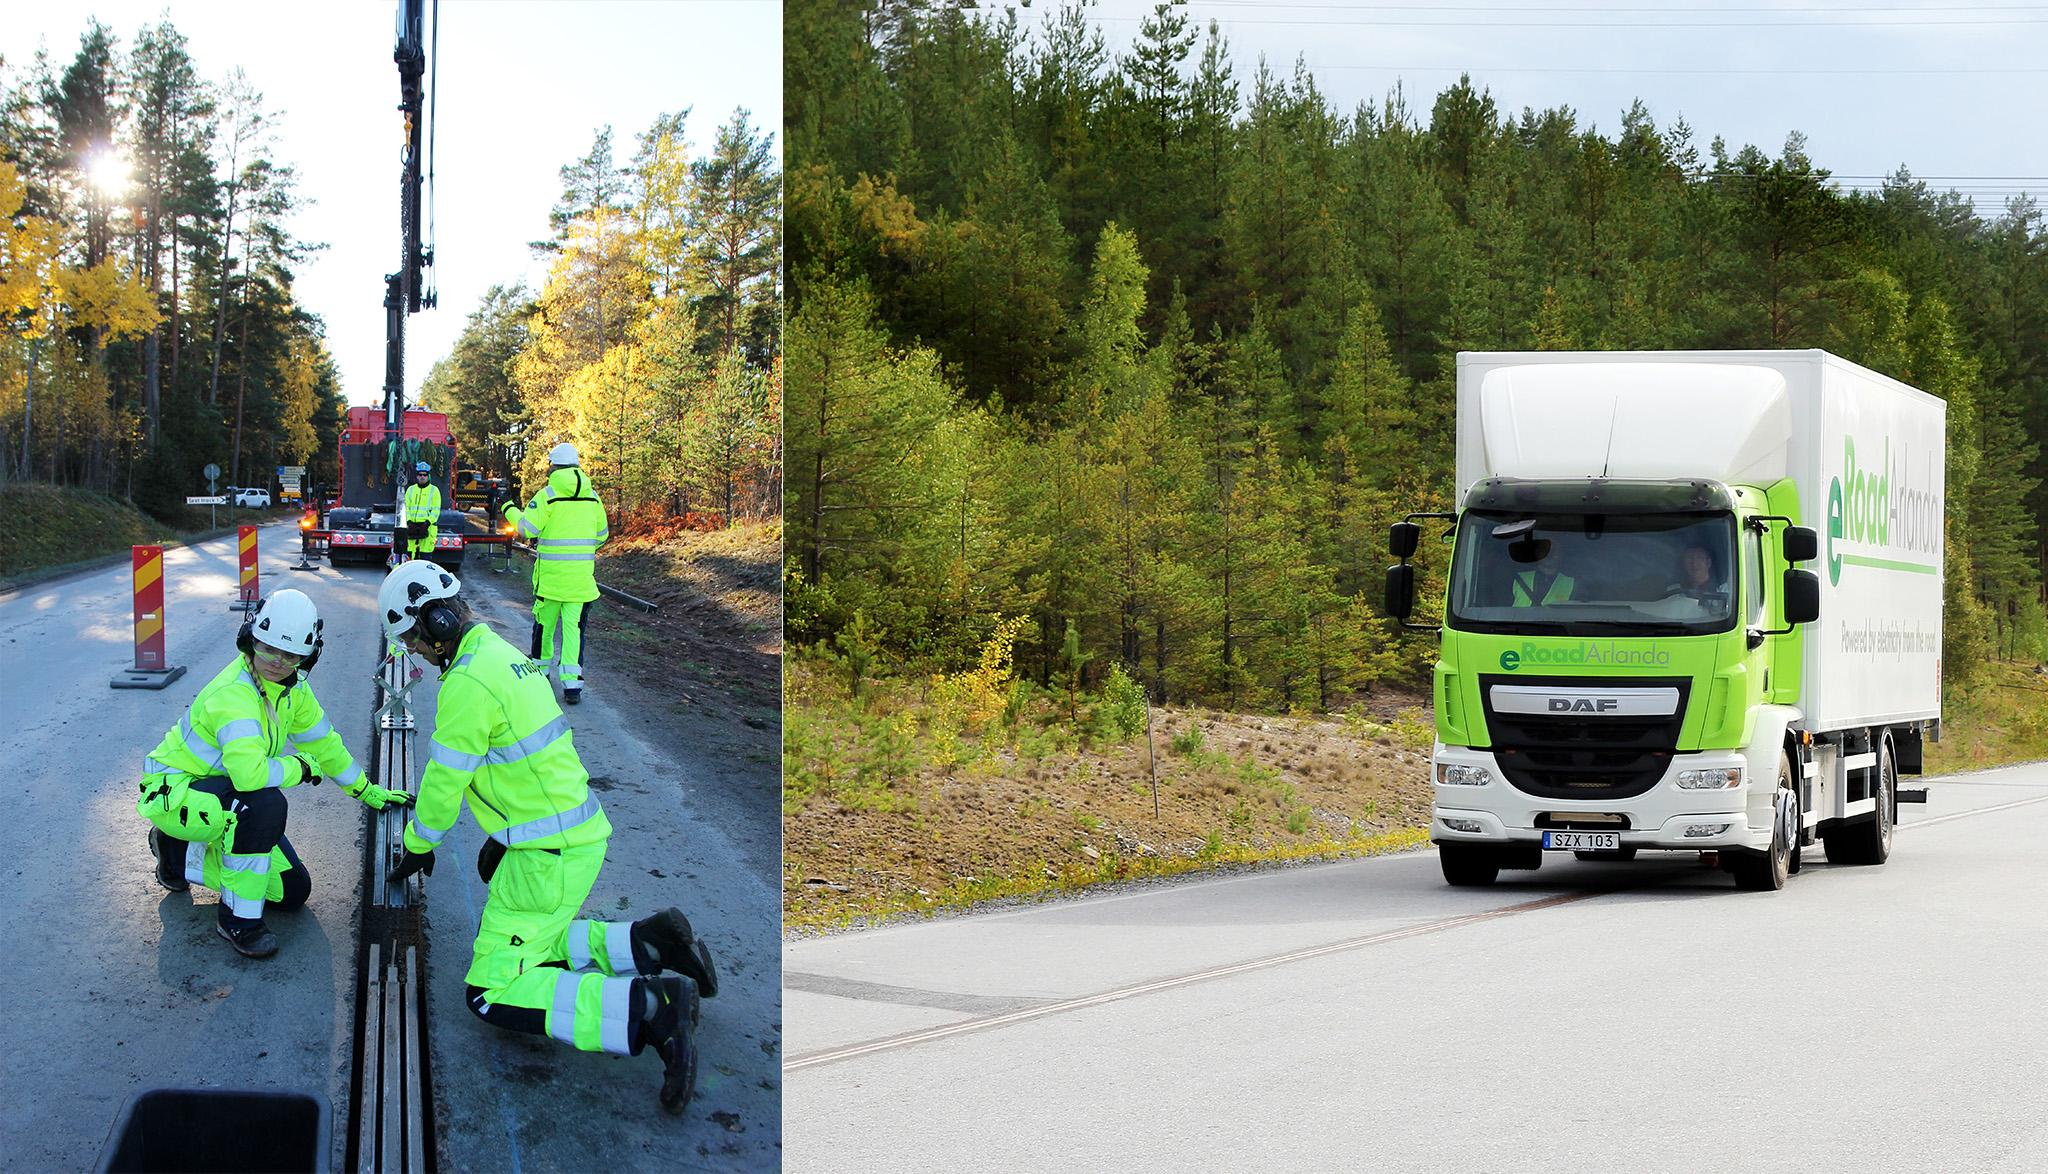 Left: workers installing a rail in a road. Right: An electric lorry driving on the rail.